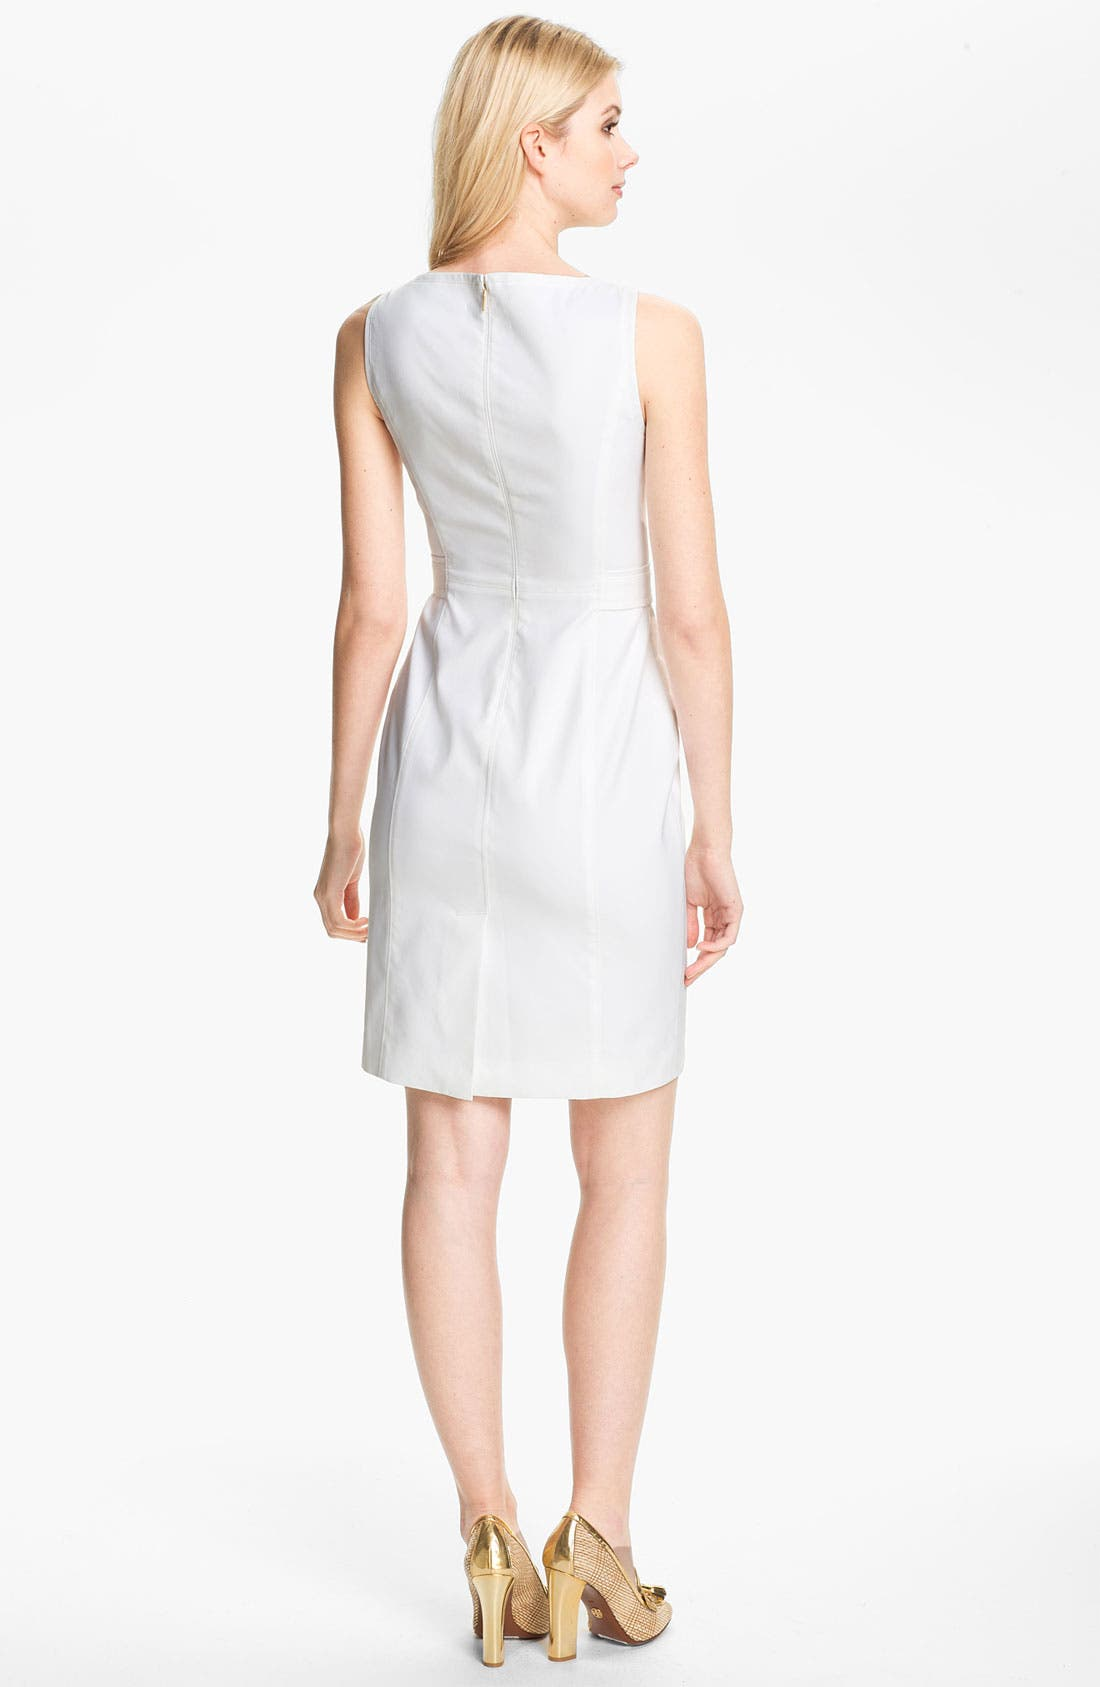 TORY BURCH, 'Tayler' Stretch Sheath Dress, Alternate thumbnail 2, color, 100